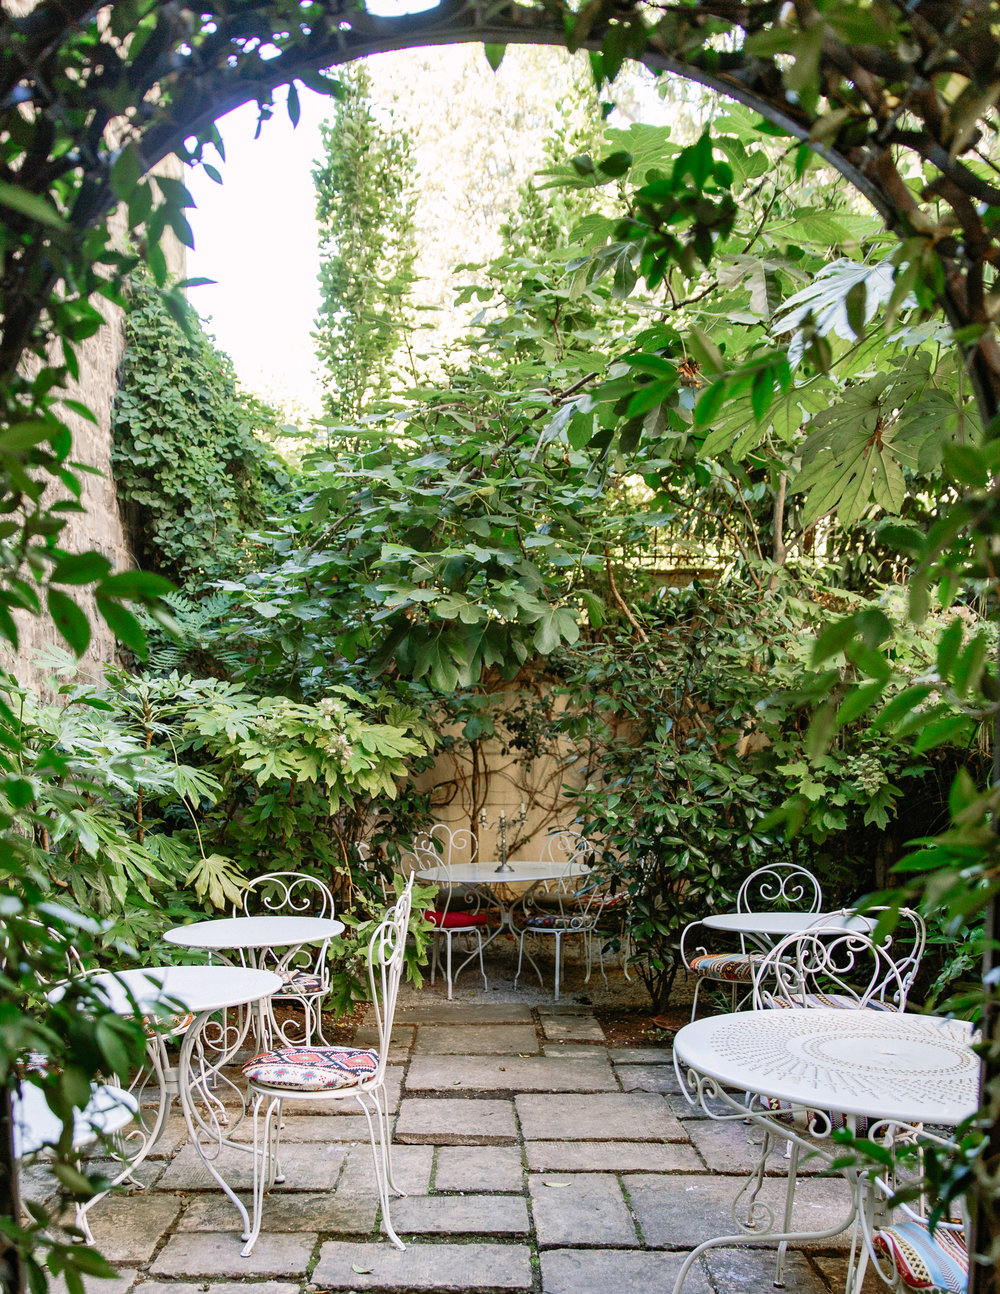 HOTEL PARTICULIER MONTMARTRE 23 Avenue Junot, Pavillon D, 75018 INSIDER TIP | The best part about spending time in the Hotel Particulier garden is that you're still part of the thriving city while being just the right distance from the hustle and bustle. Non guests can come for an aperitif and enjoy the calm all year round.